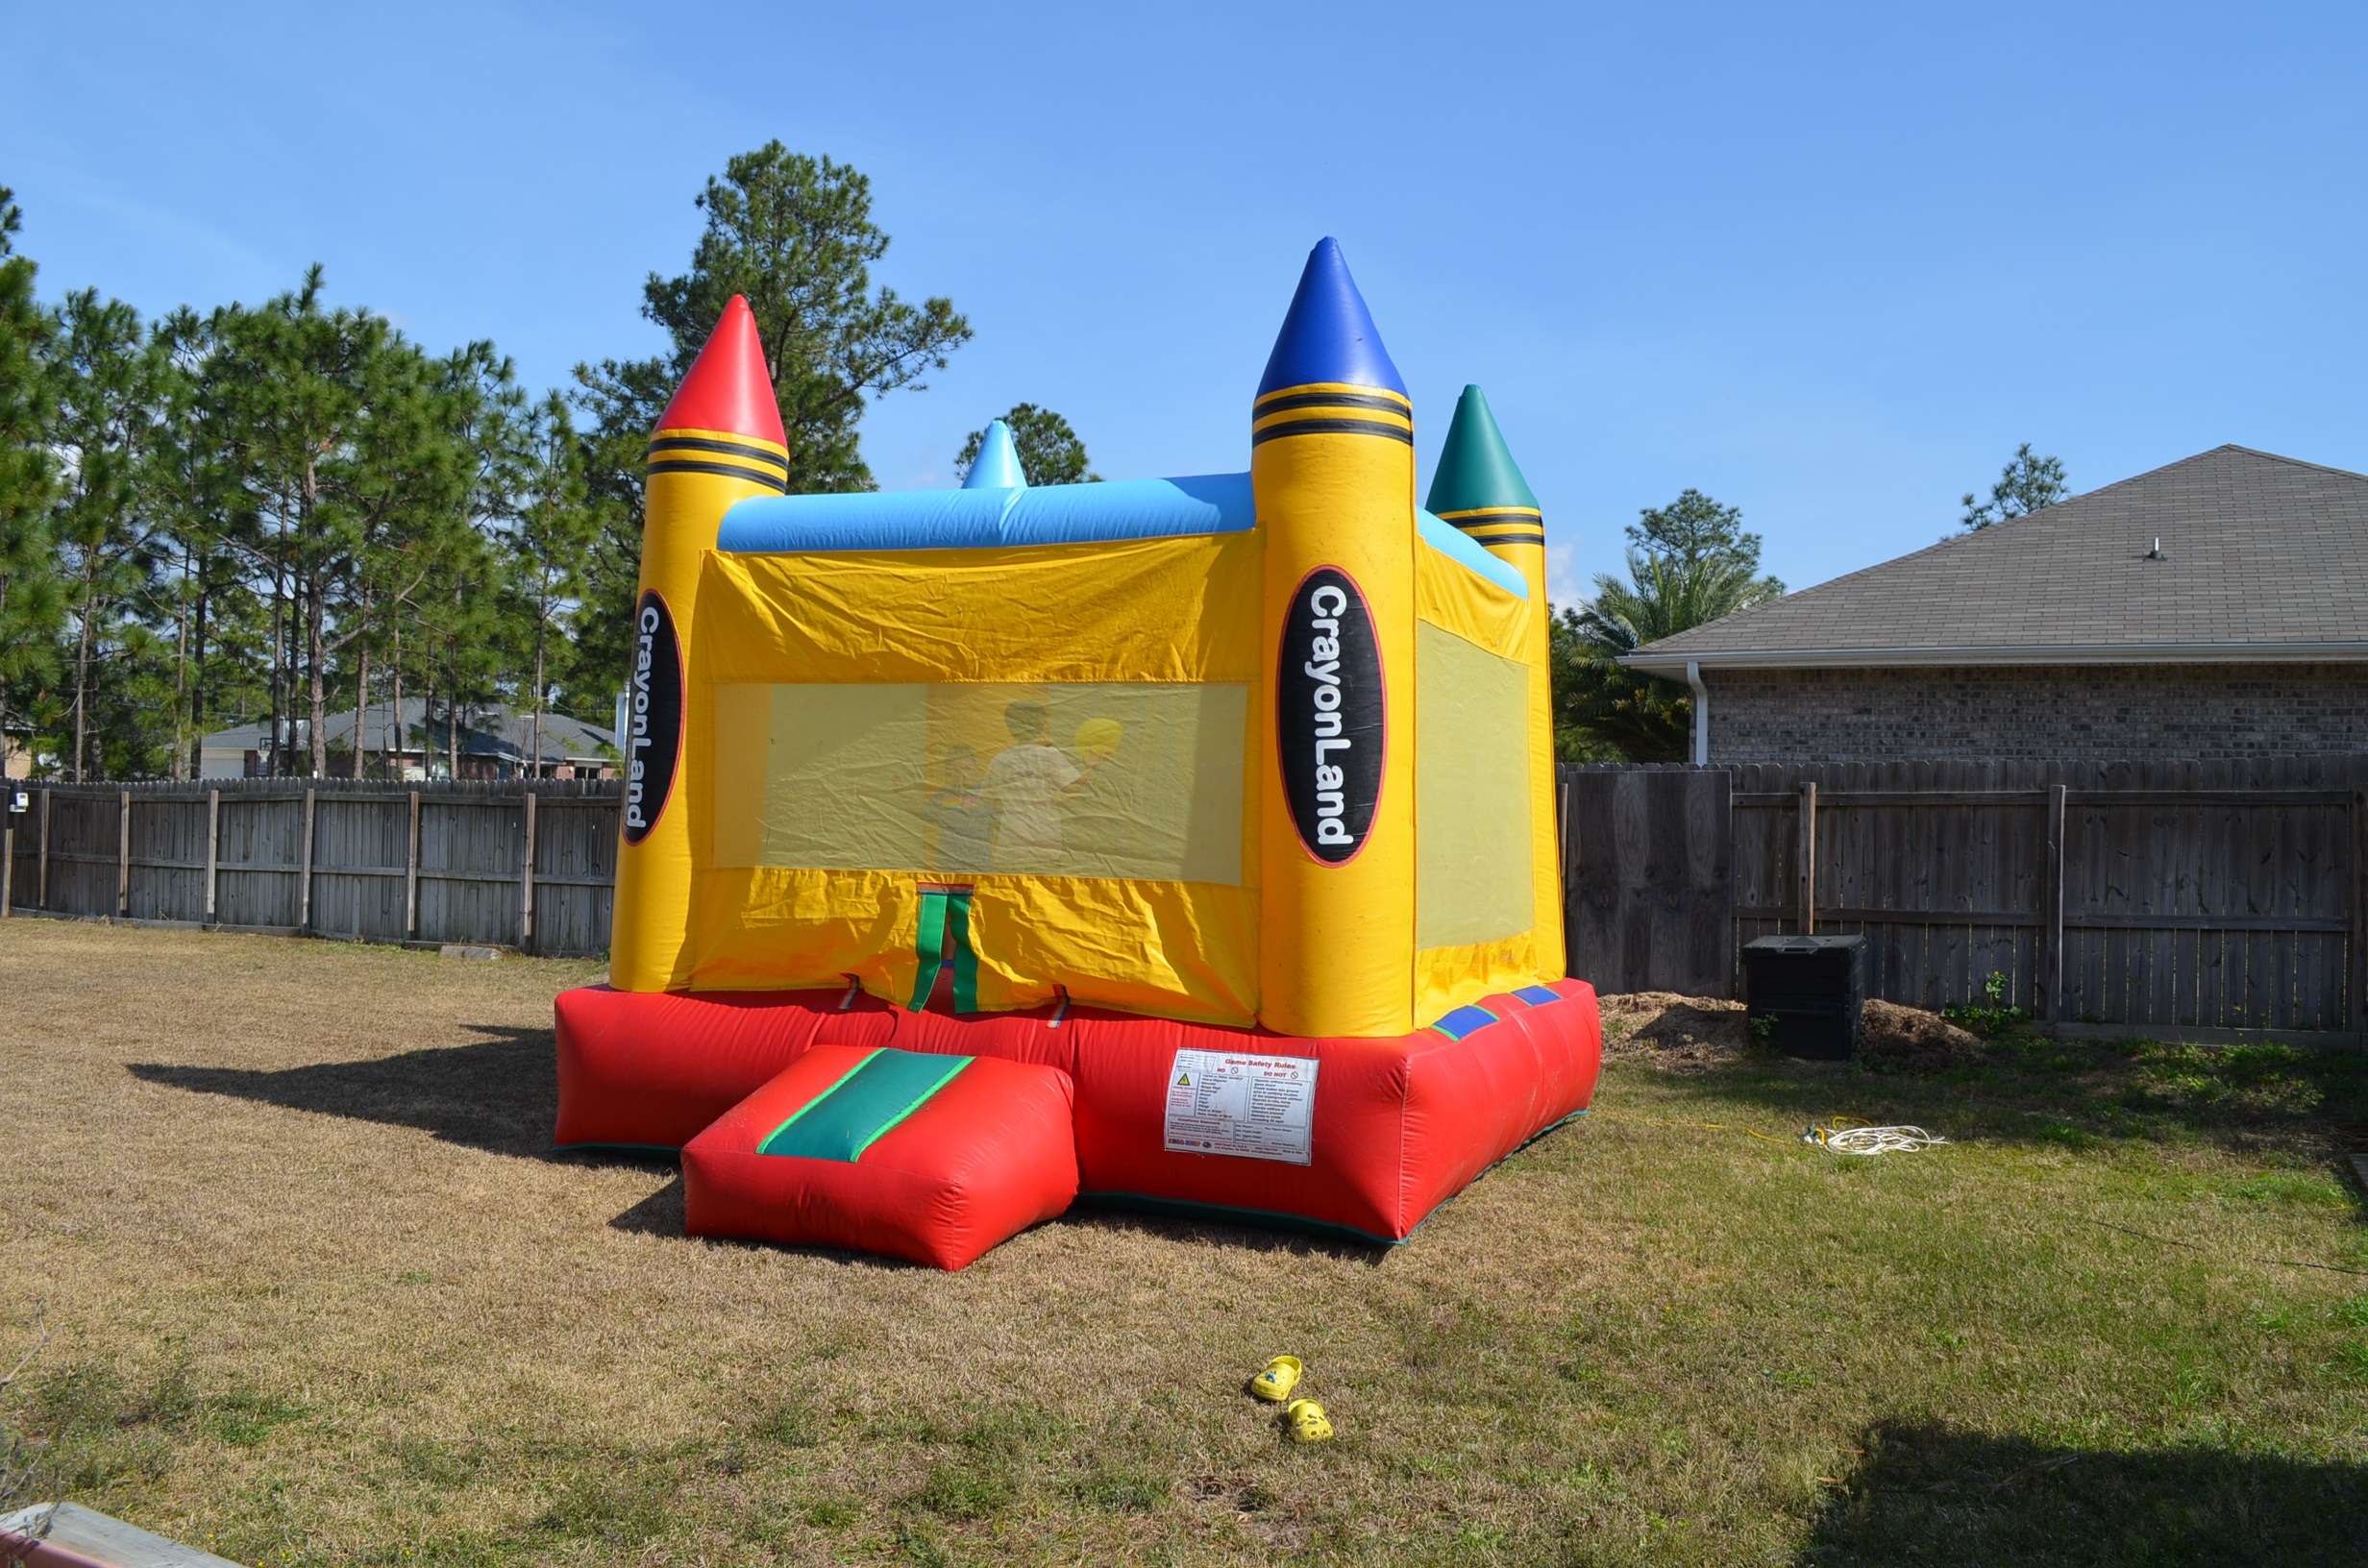 The bouncy house, rented from Hurlburt Field Outdoor Recreation.